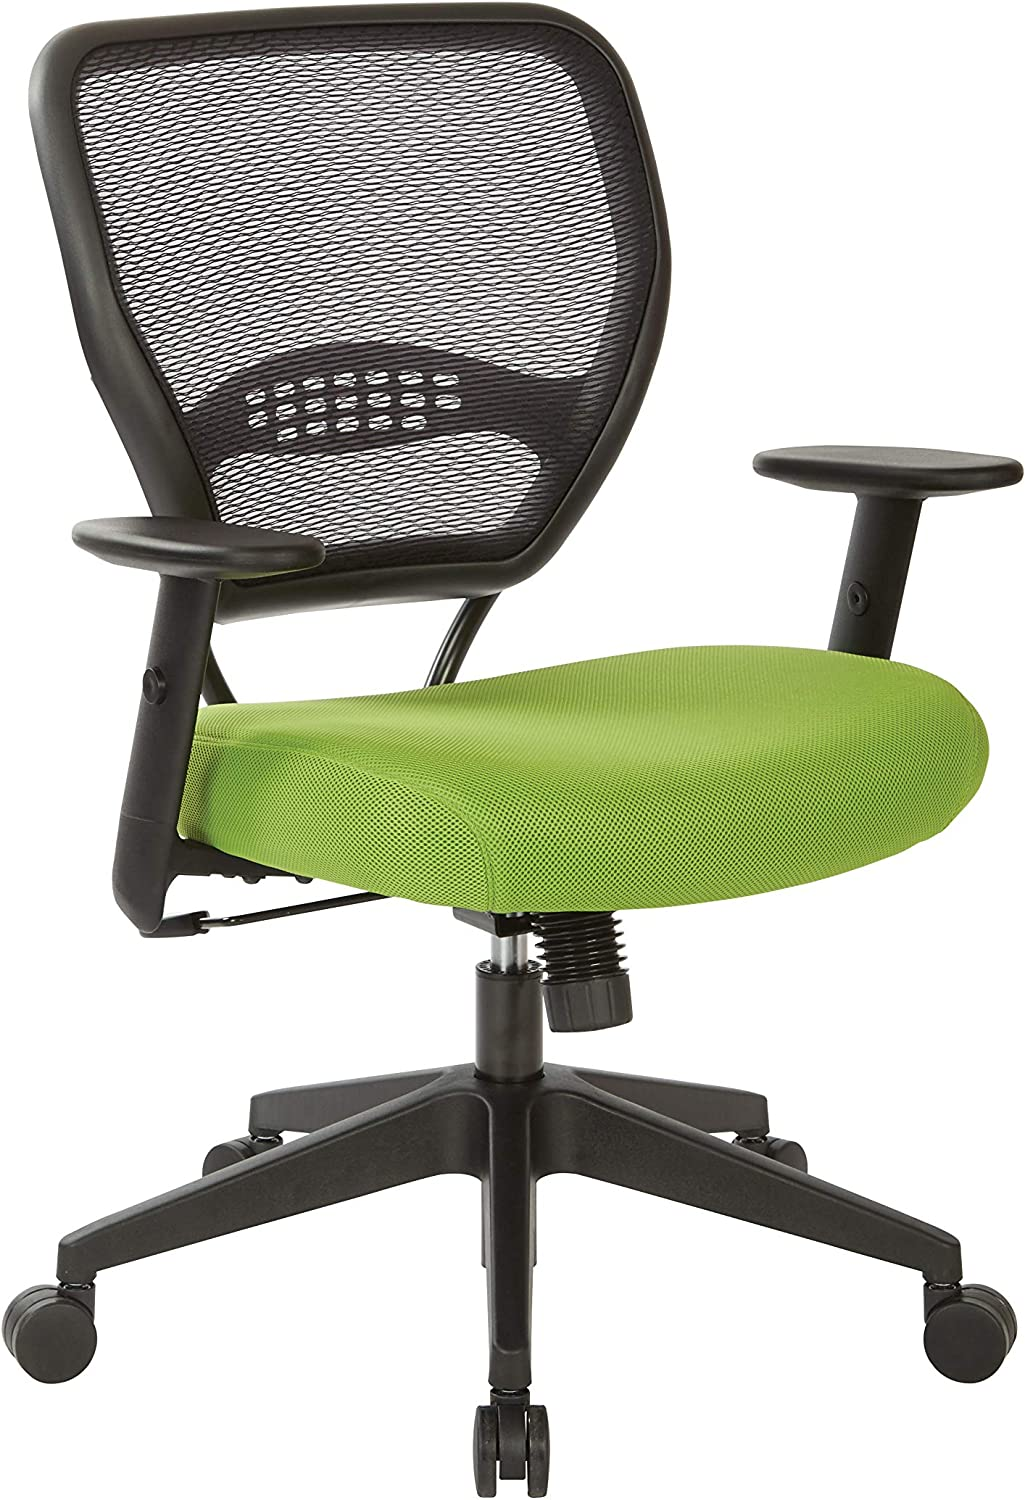 Office Star 55 Series Professional Dark Air Grid Back Office Desk Chair with Built-in Lumbar Support, Tilt Control, Adjustable Height and Arms, Green Mesh